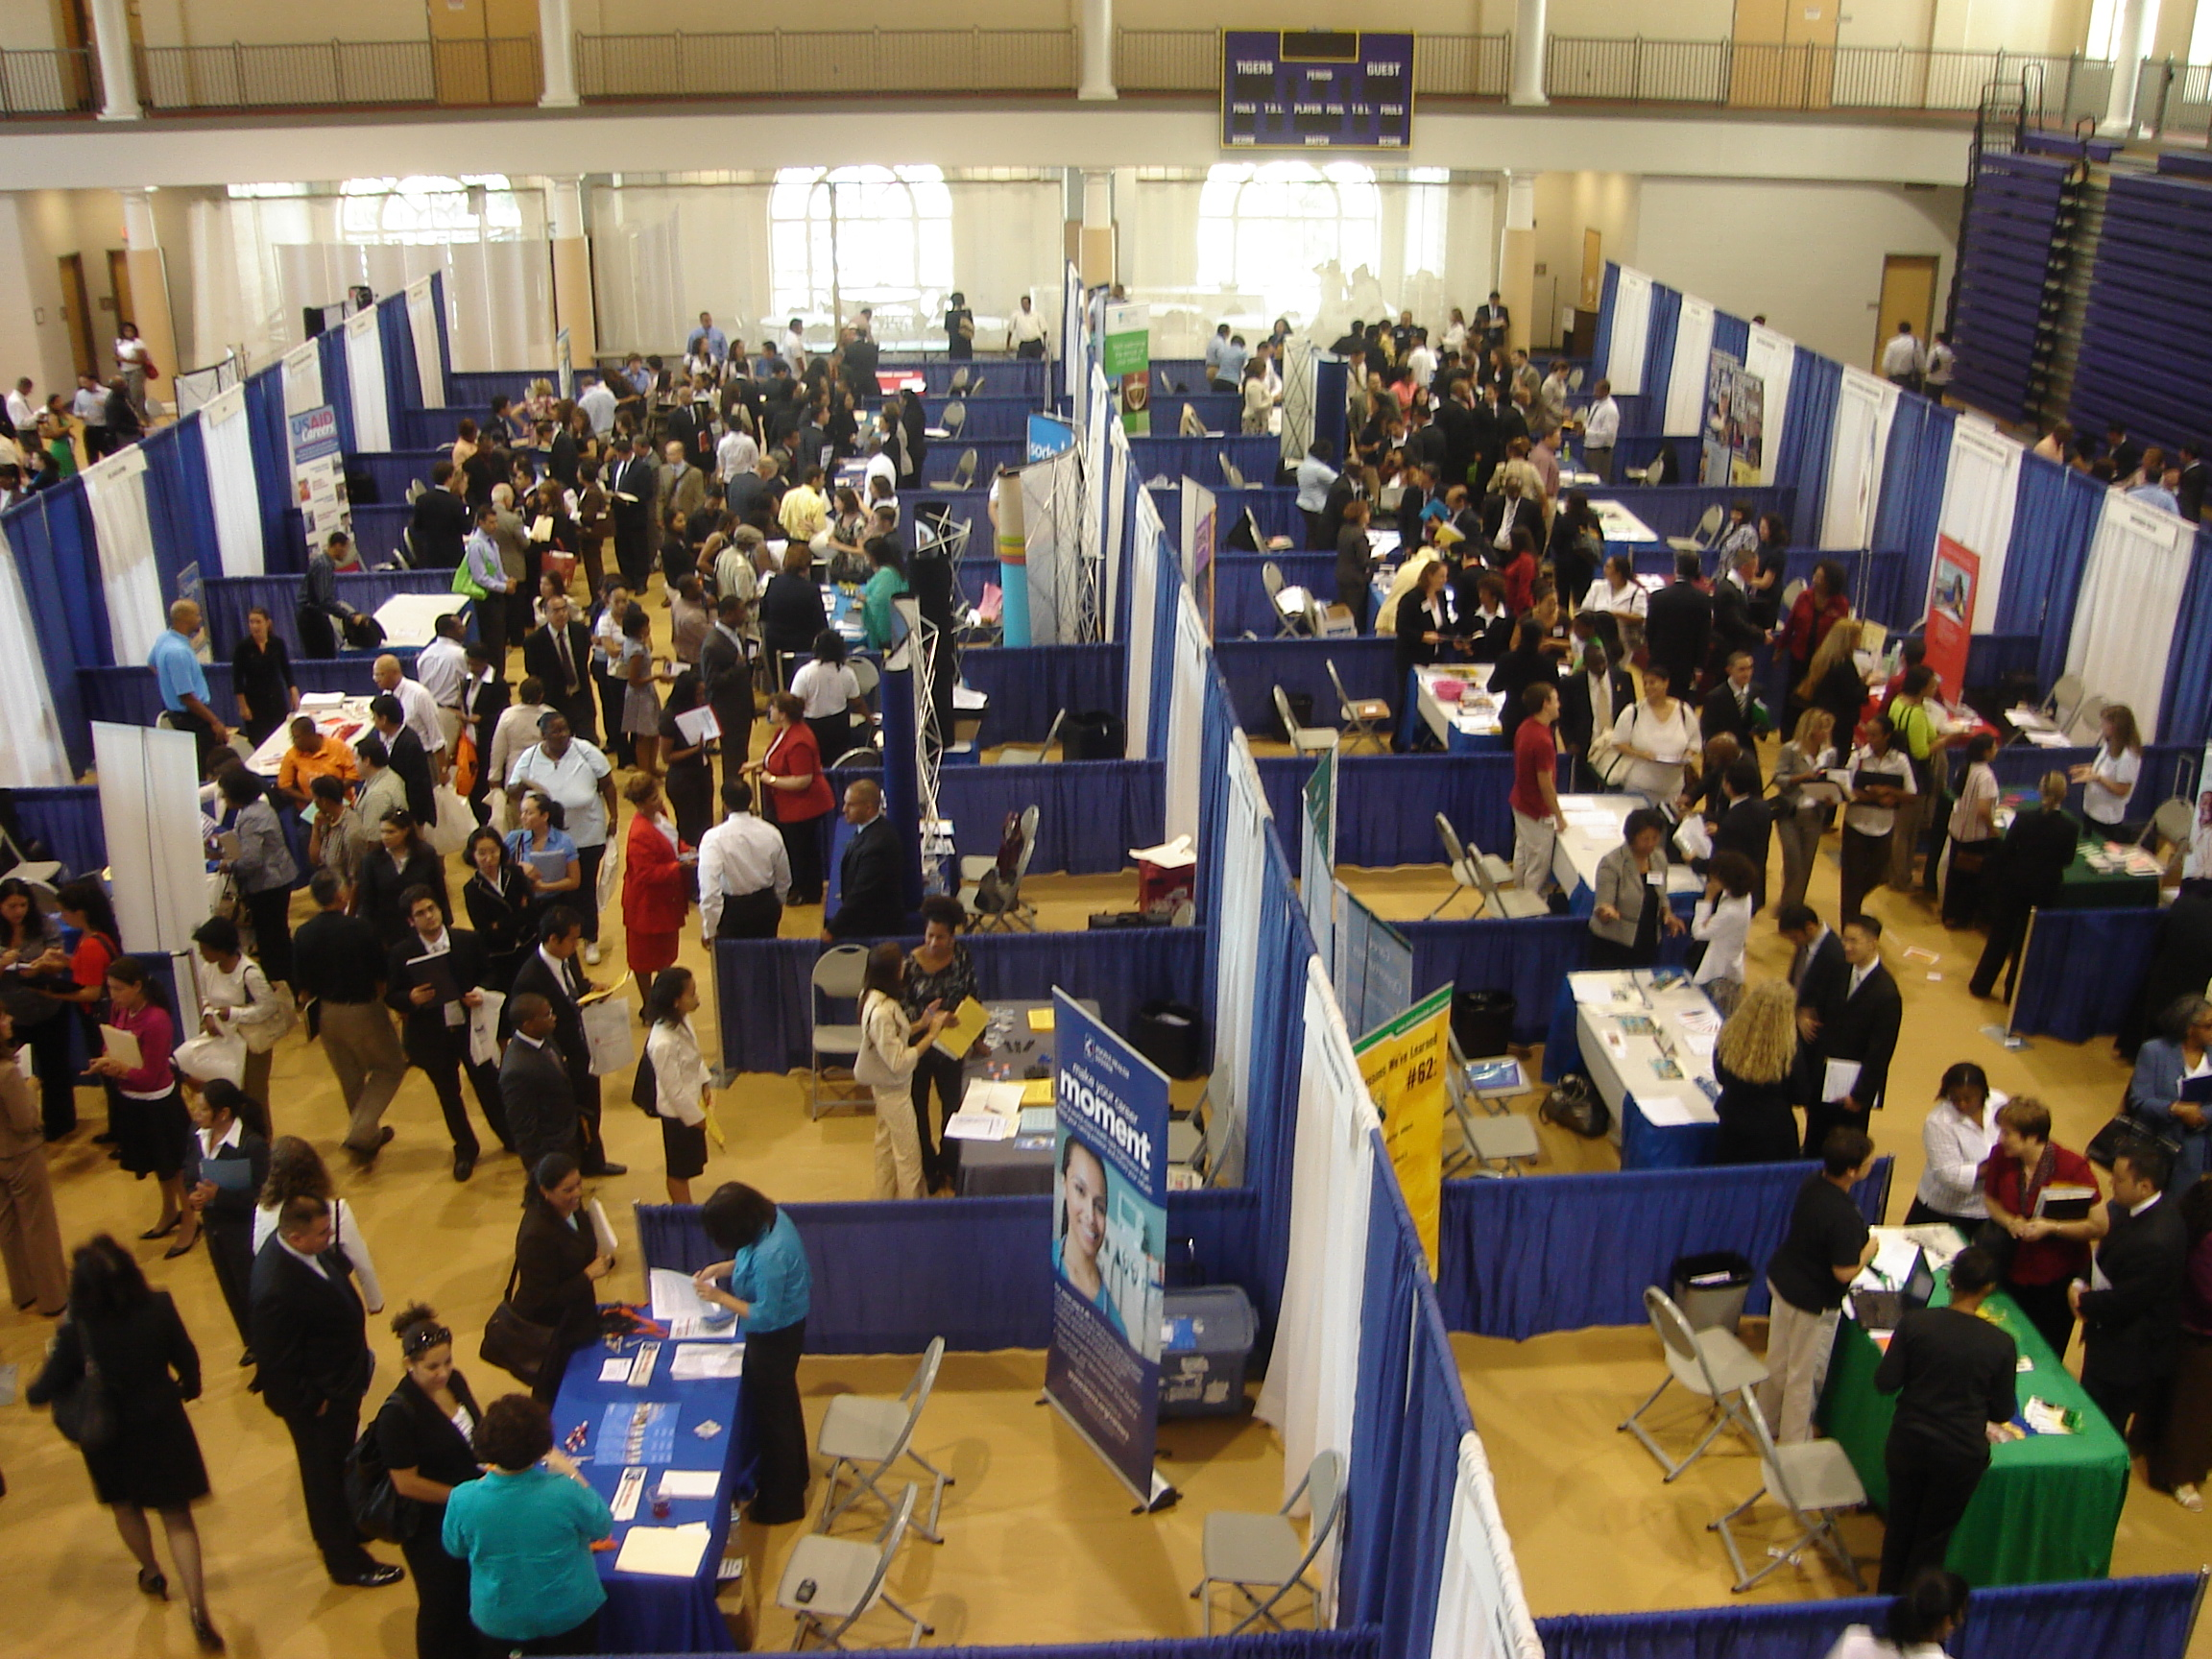 Great Questions to Ask at Career Fairs